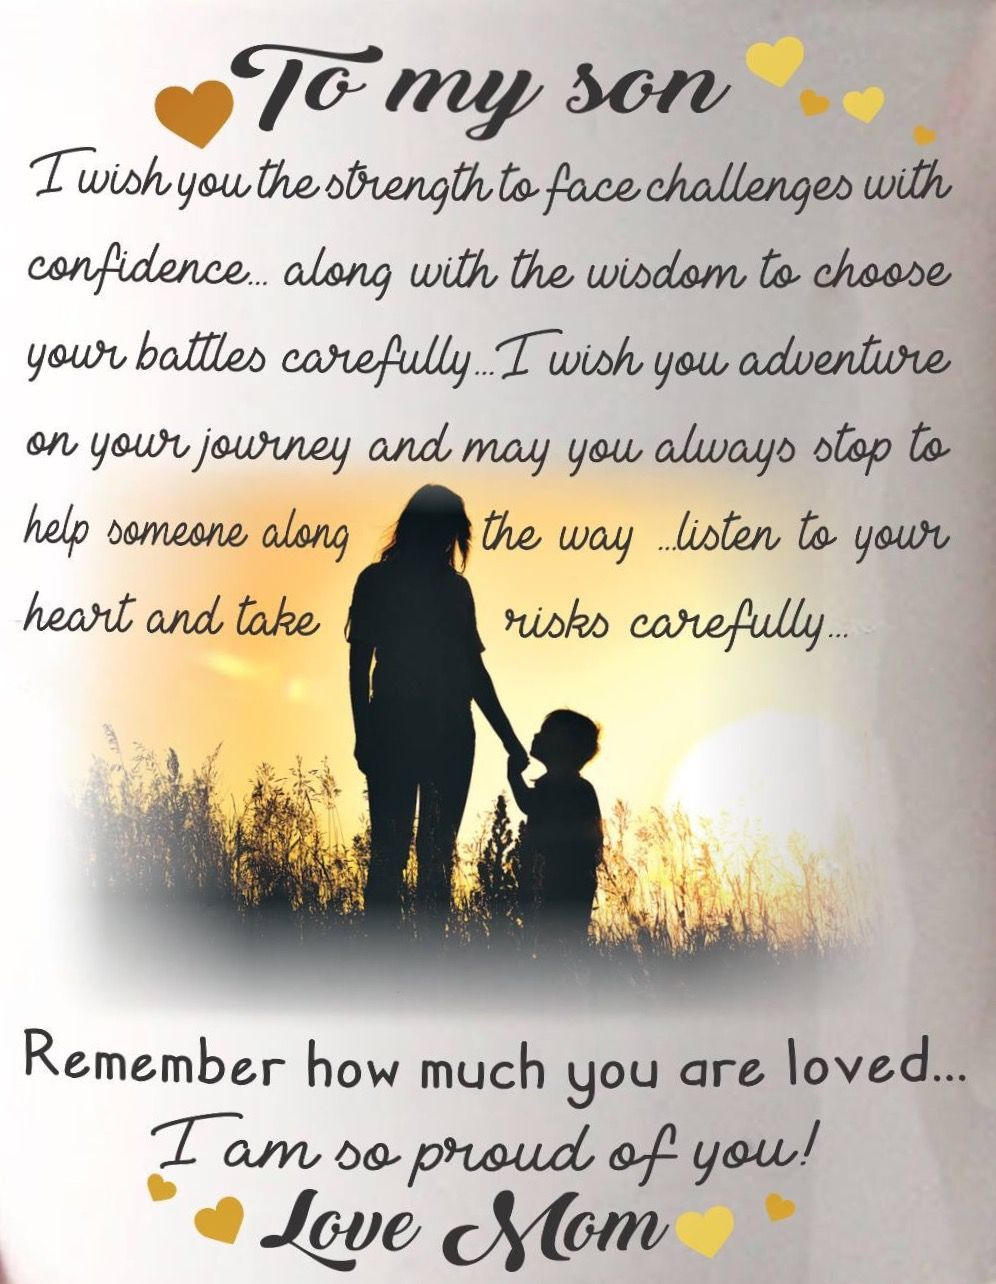 Mother Son Love Quotes Love my son mother   son bond !!! | For My Sweet Boys | Son quotes  Mother Son Love Quotes